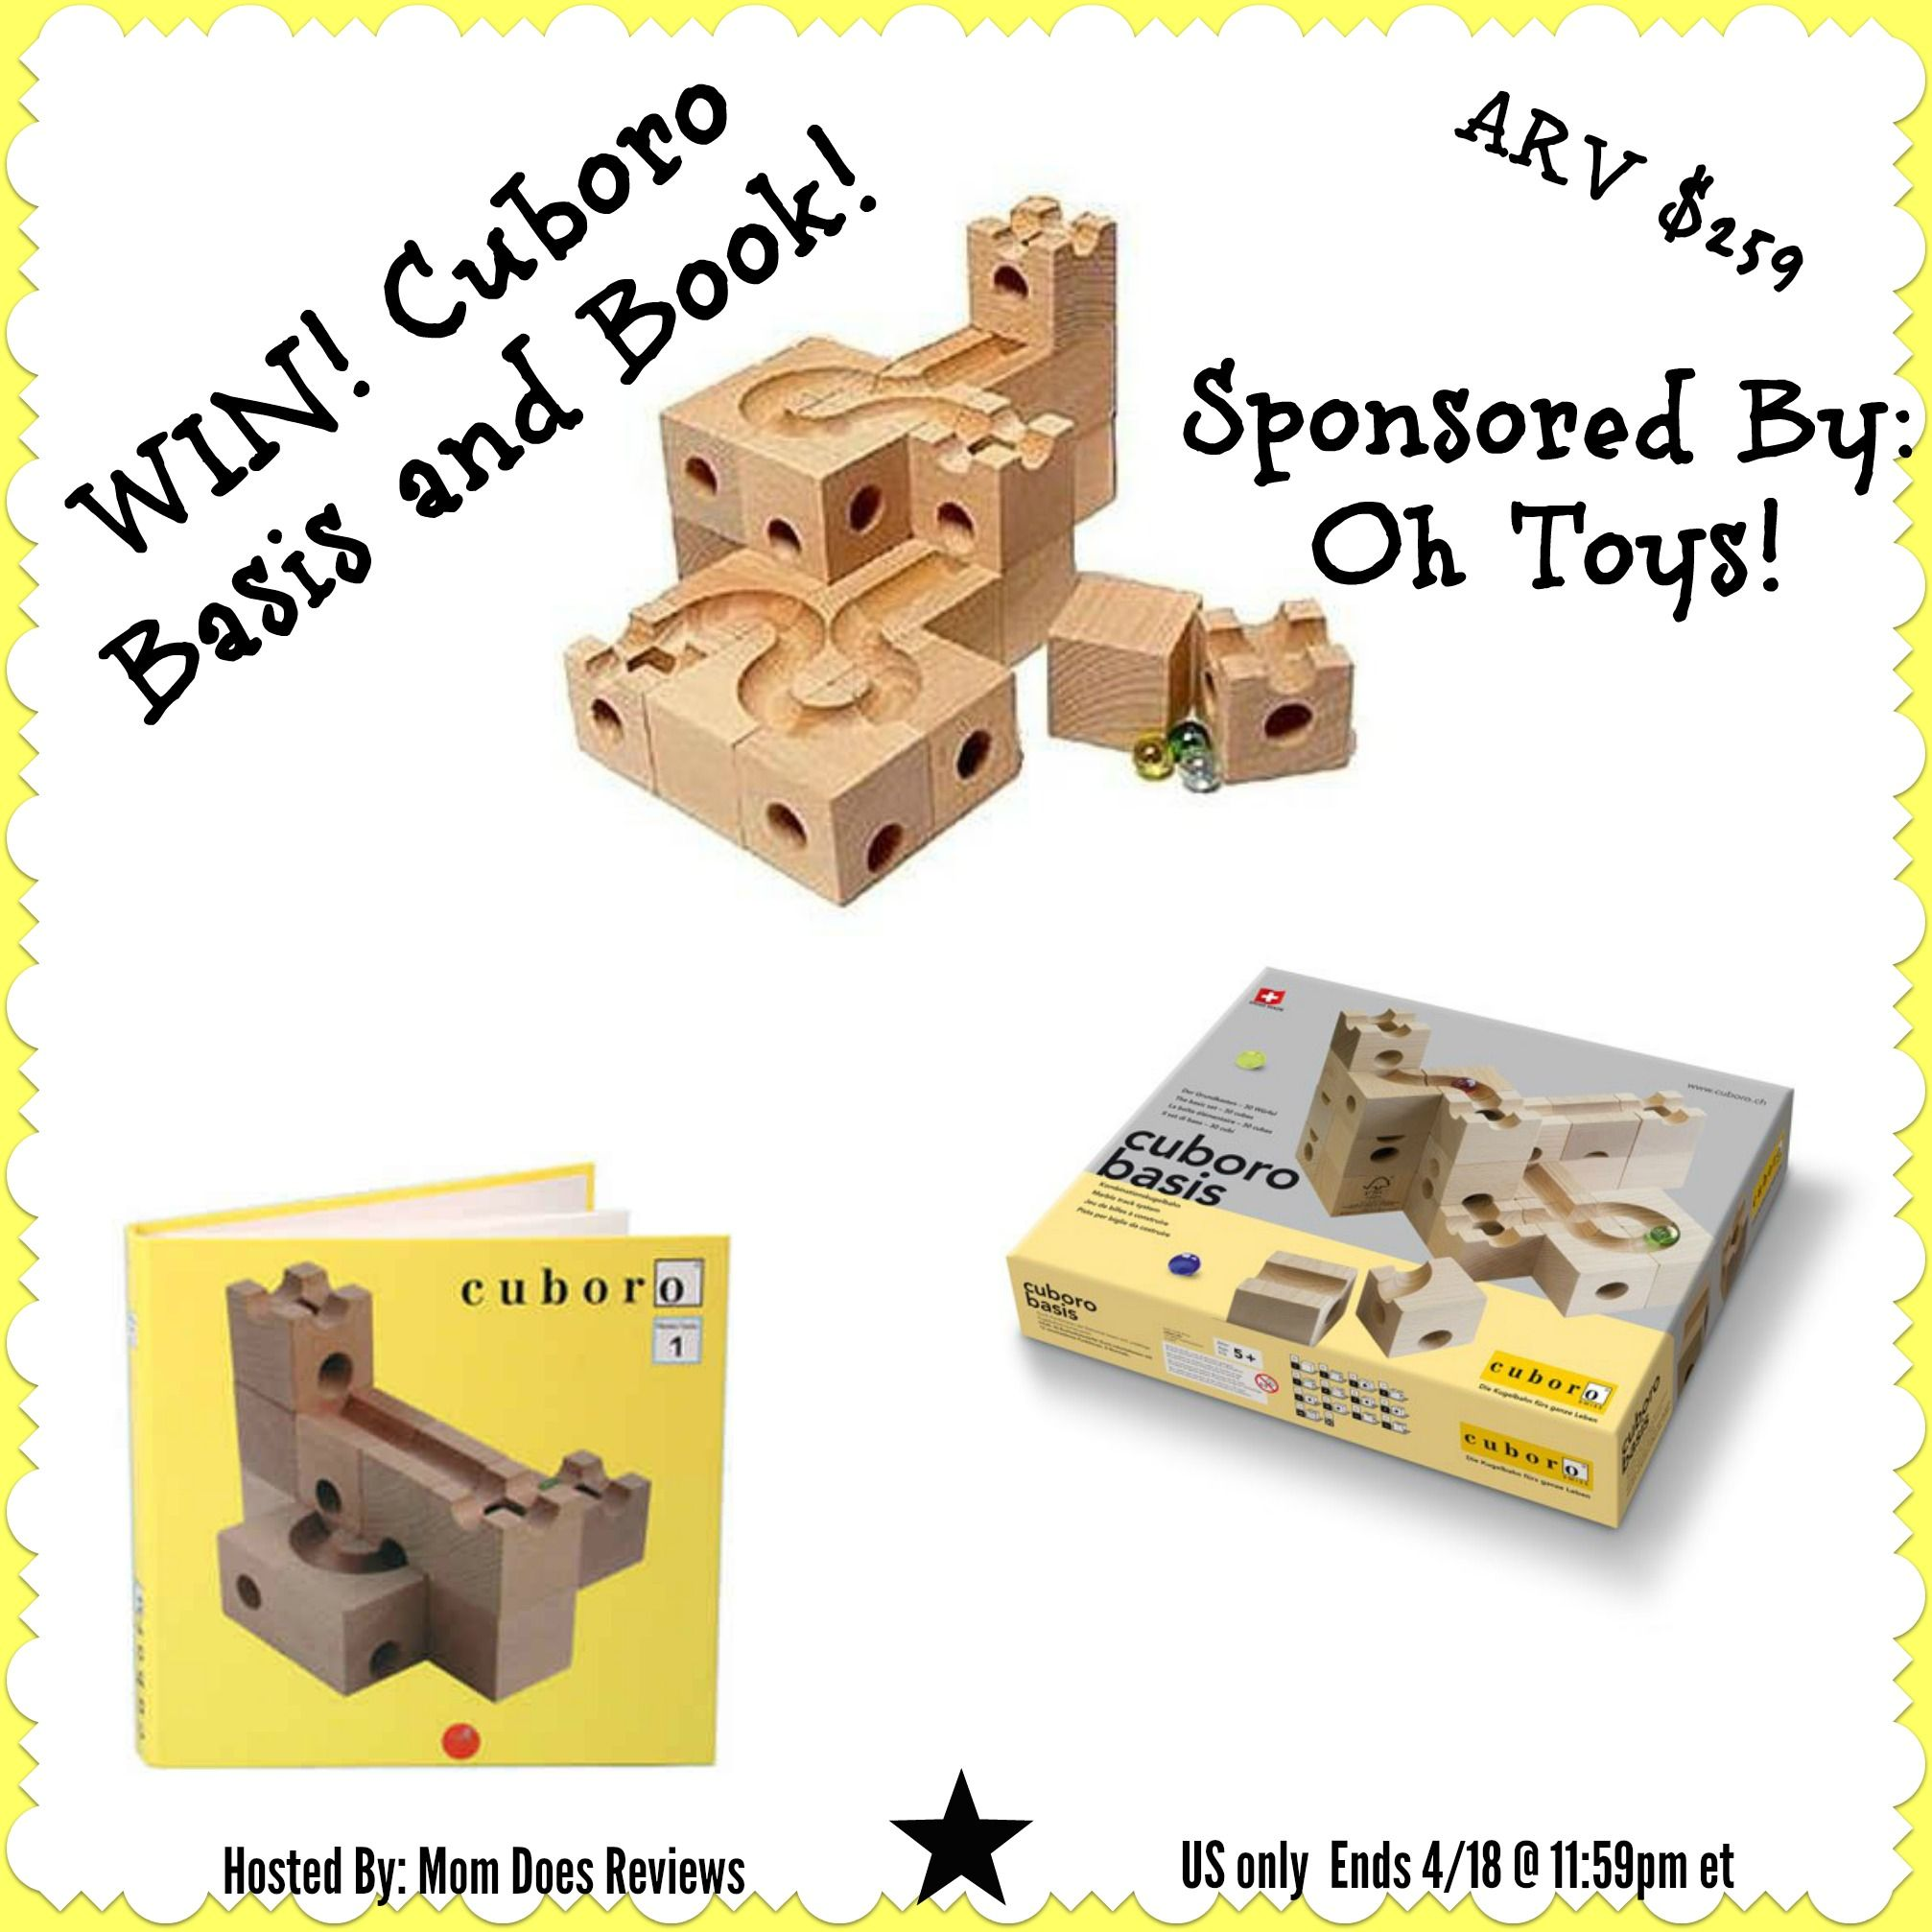 WIN! Cuboro Basis Block Set and Cuboro Instruction Book! Sponsored by: Oh Toys! Hosted by: Mom Does Reviews What is Cuboro and where does it come from? Well, Cuboro is a wooden block company that incorporates wooden blocks with marble mazes in order to...